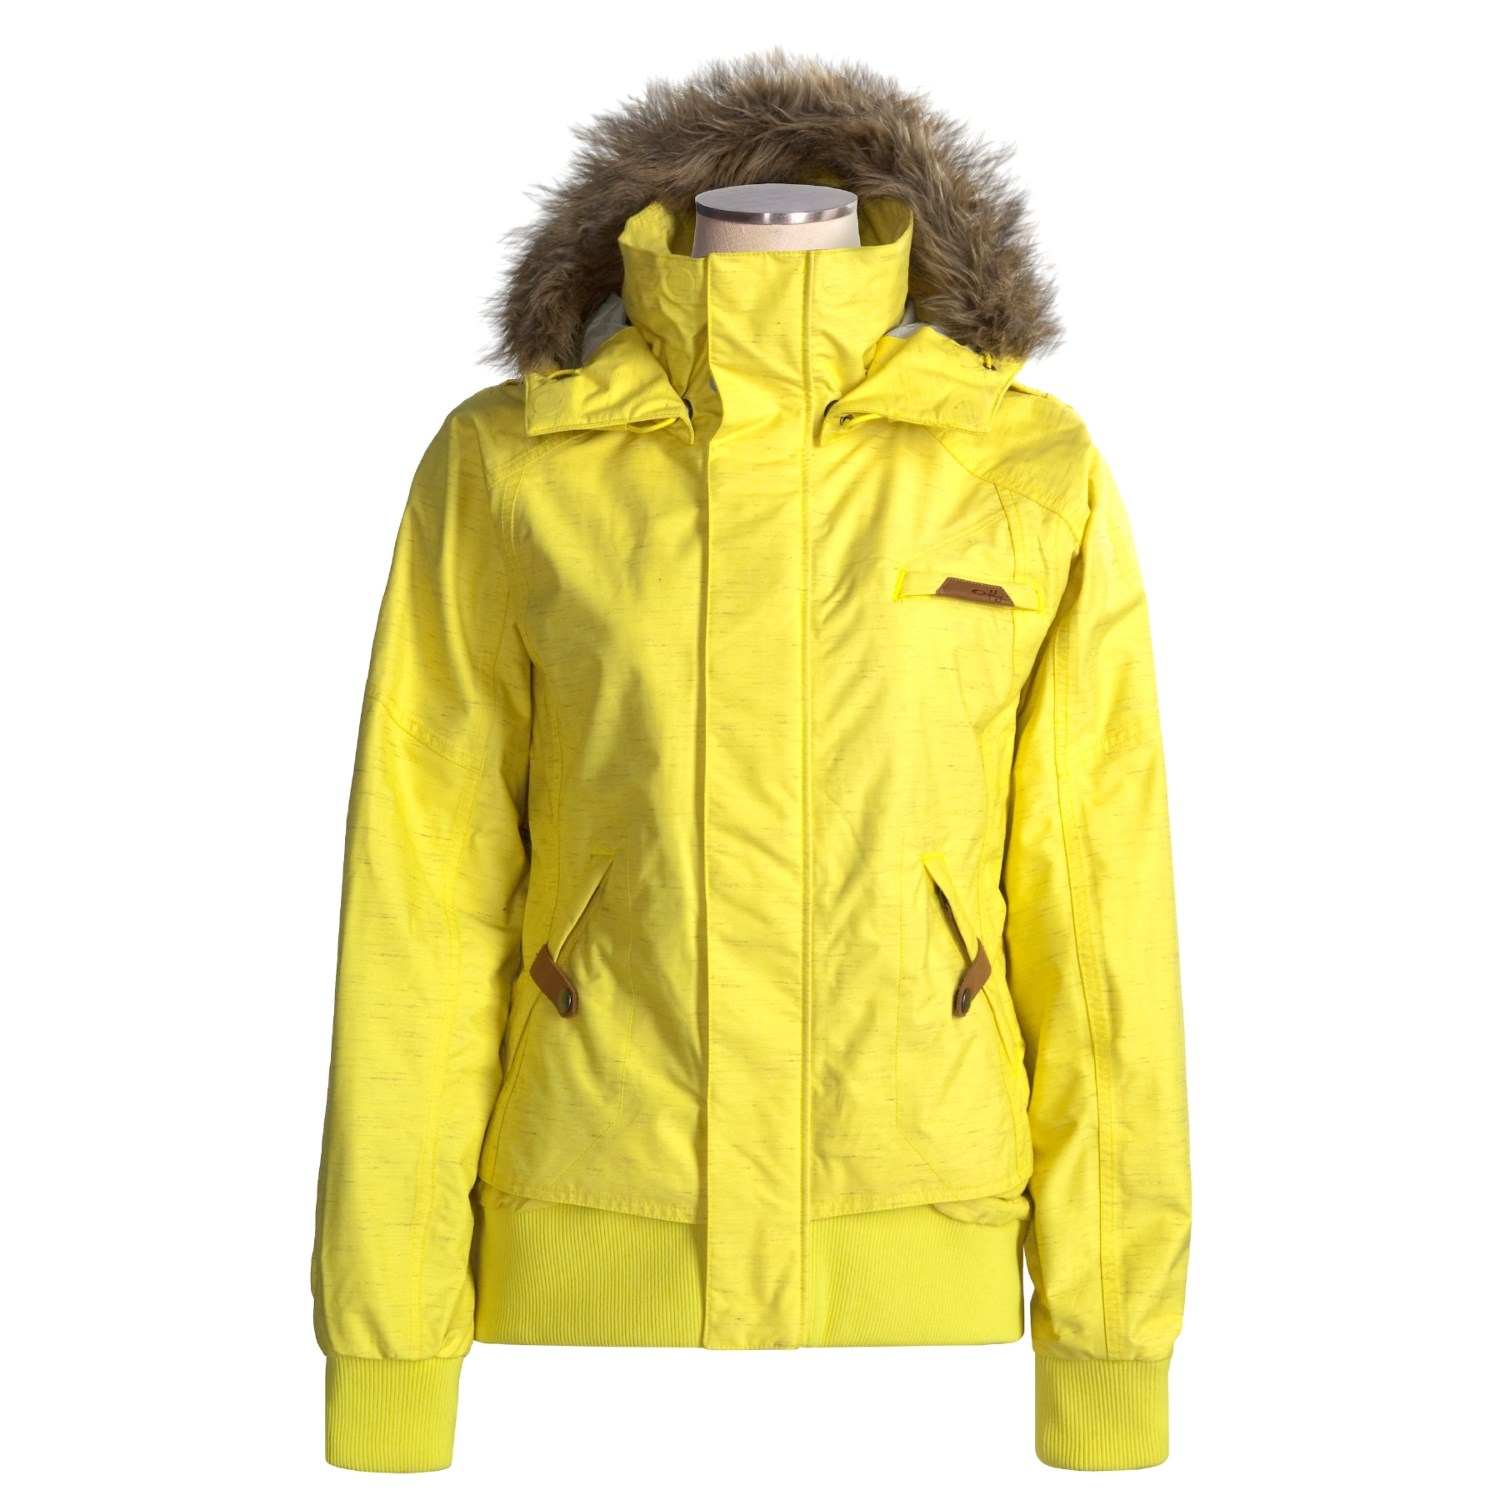 Oakley snow bomber jacket for women m save